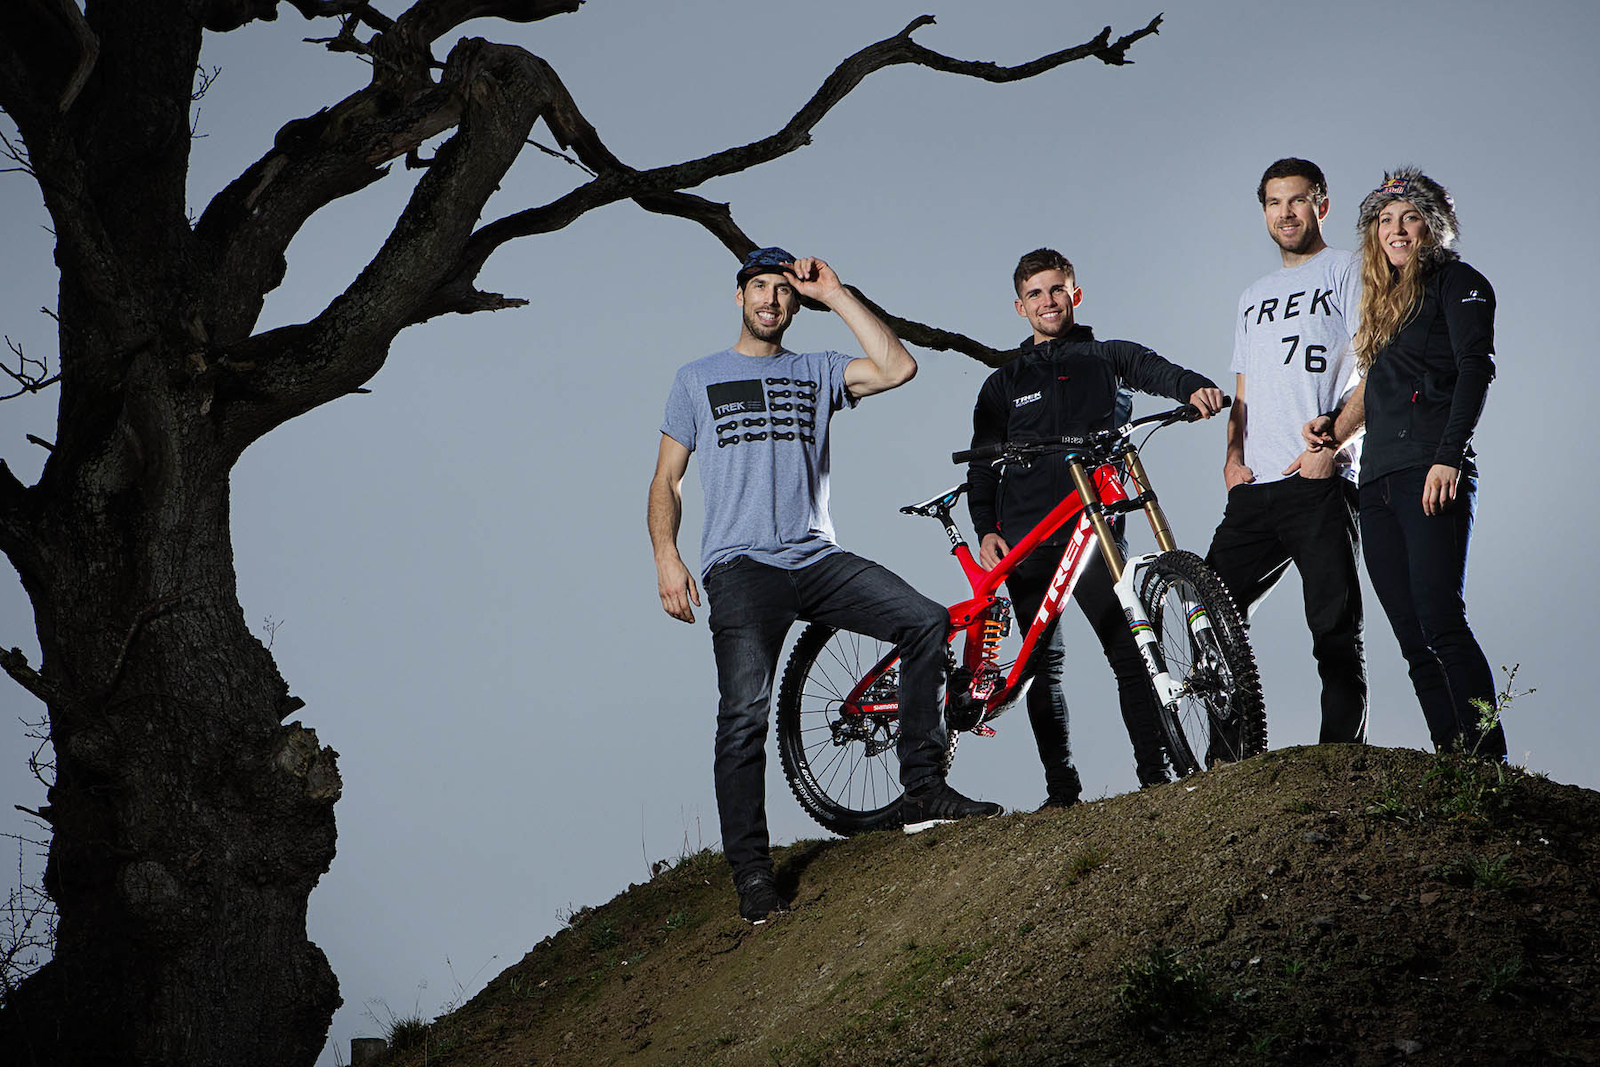 Atherton Racing in Wales United Kingdom on the 04 November 2015